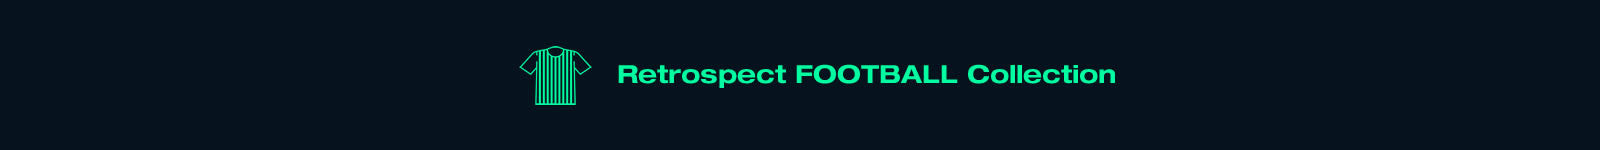 Football Vintage clothes retrospect collection